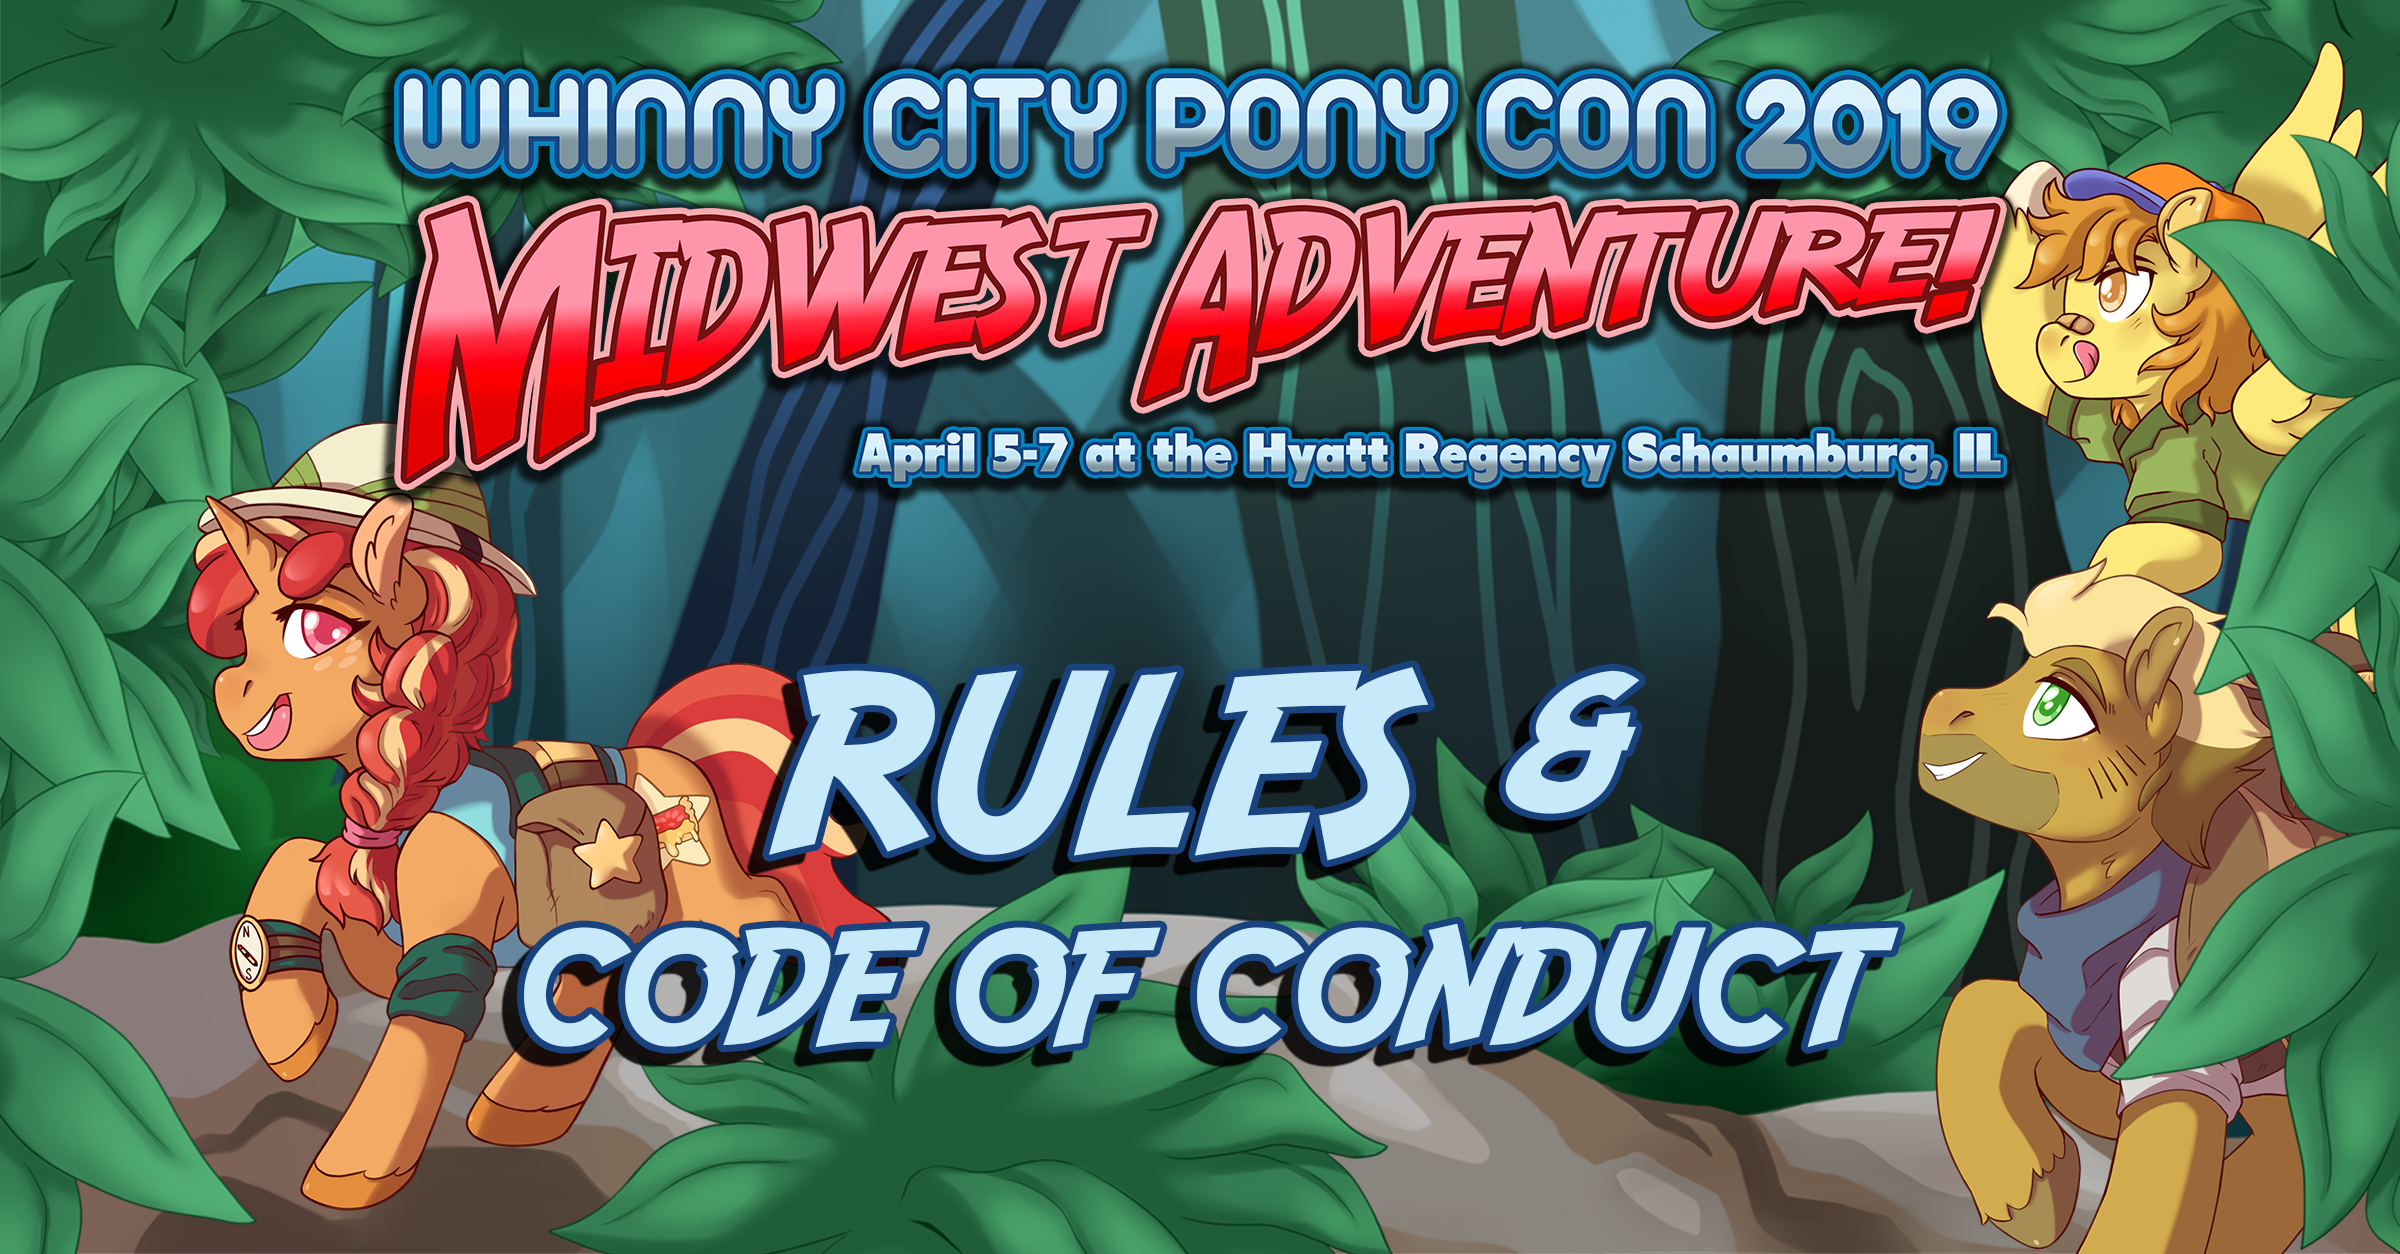 Rules & Code of Conduct - Whinny City Pony Con Whinny City Pony Con 2019